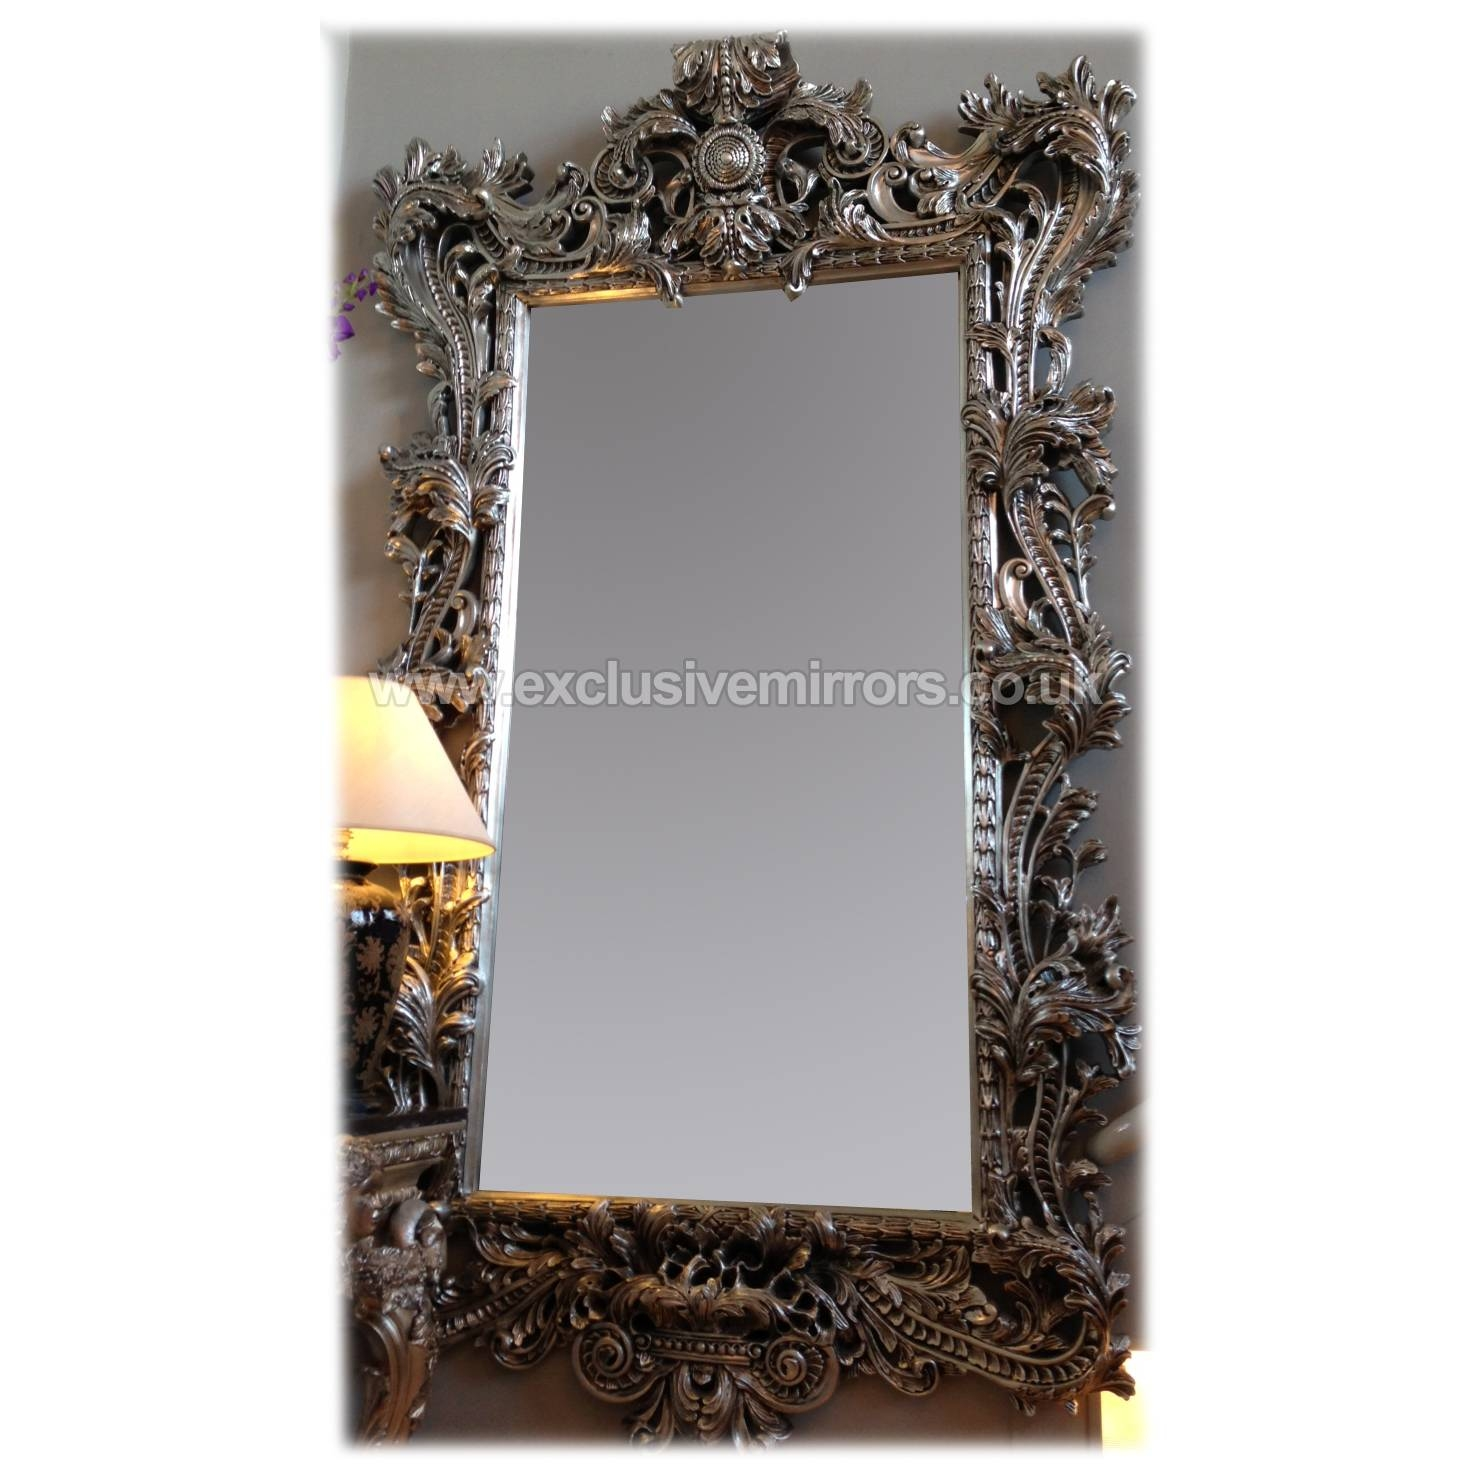 Extra Large Wall Mirrors | Inovodecor throughout Long Silver Wall Mirrors (Image 7 of 15)